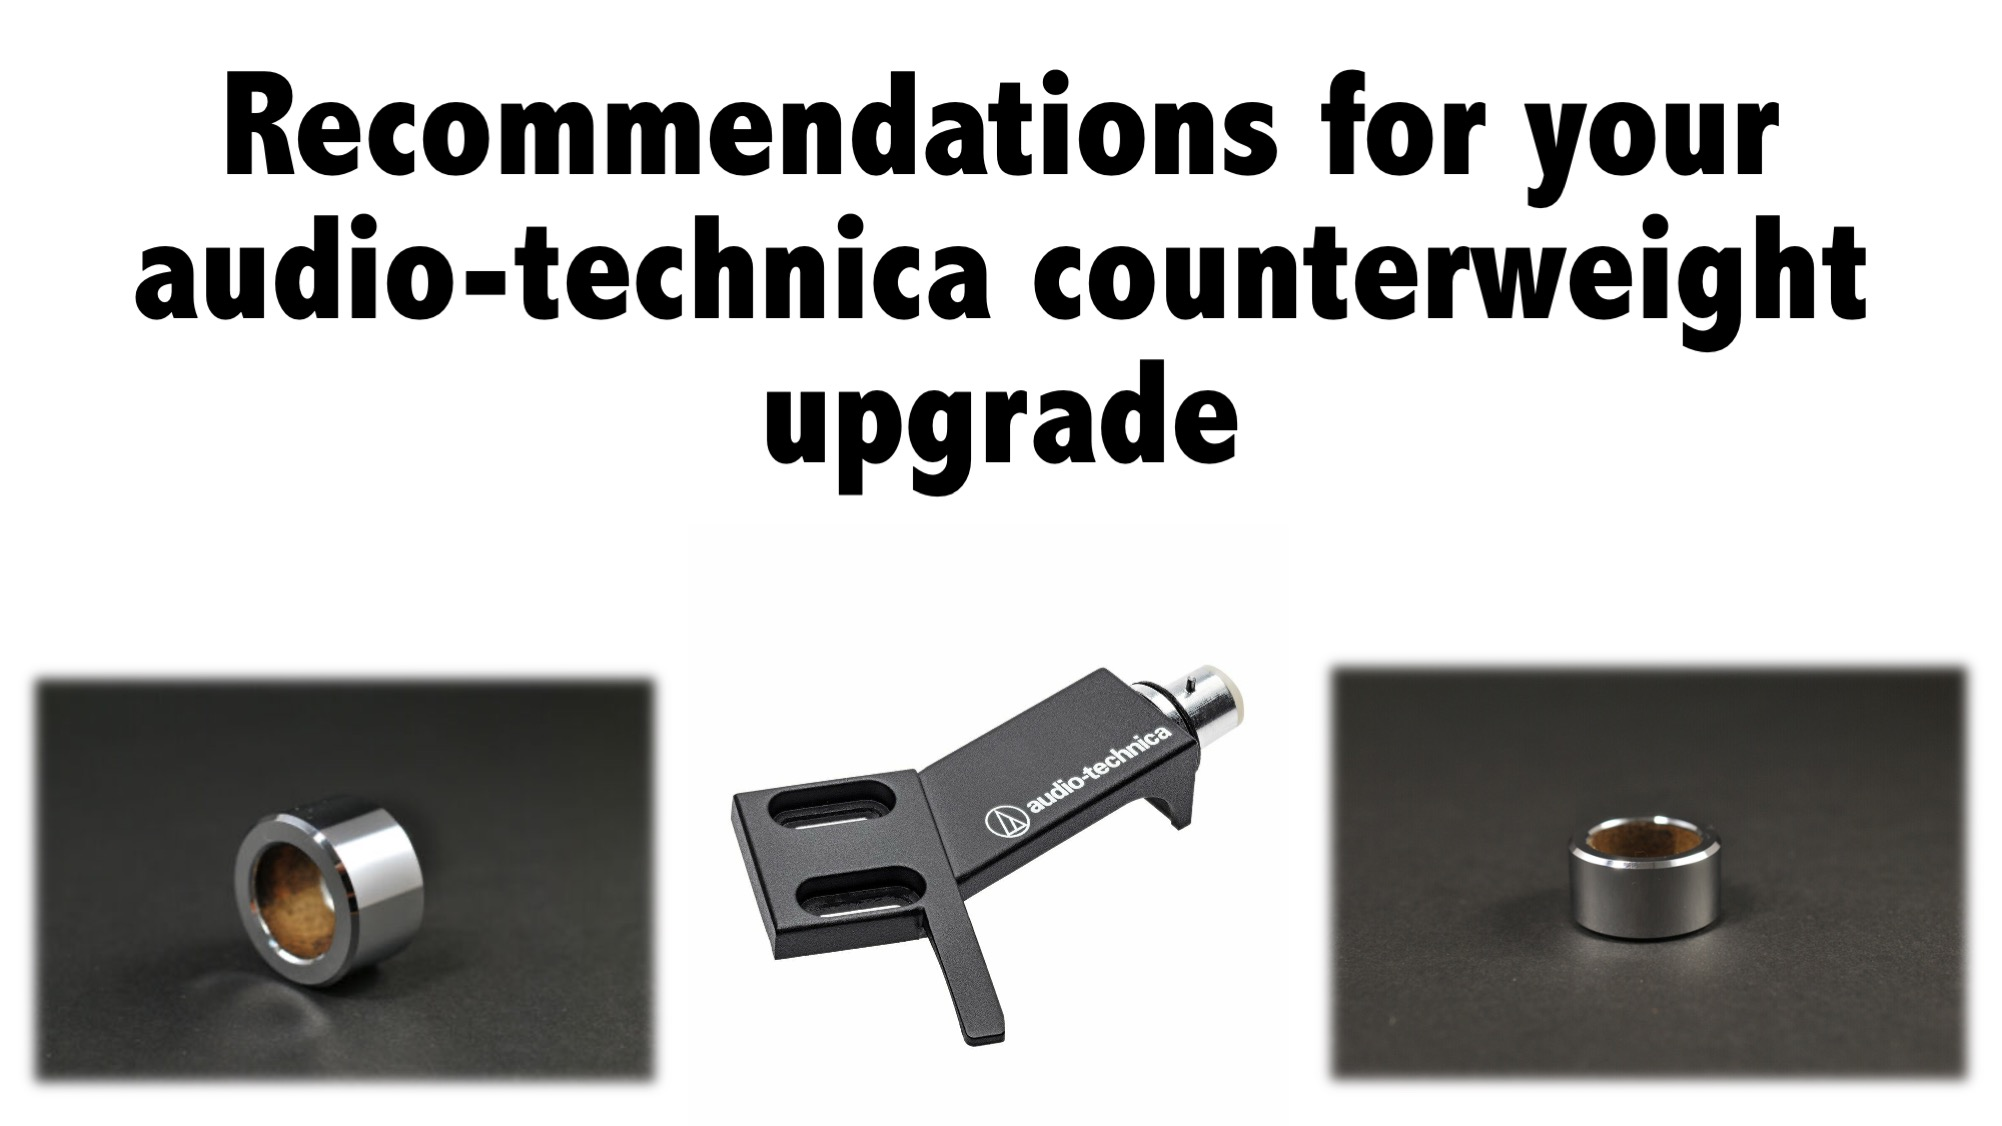 Recommendations for your audio-technica counterweight upgrade